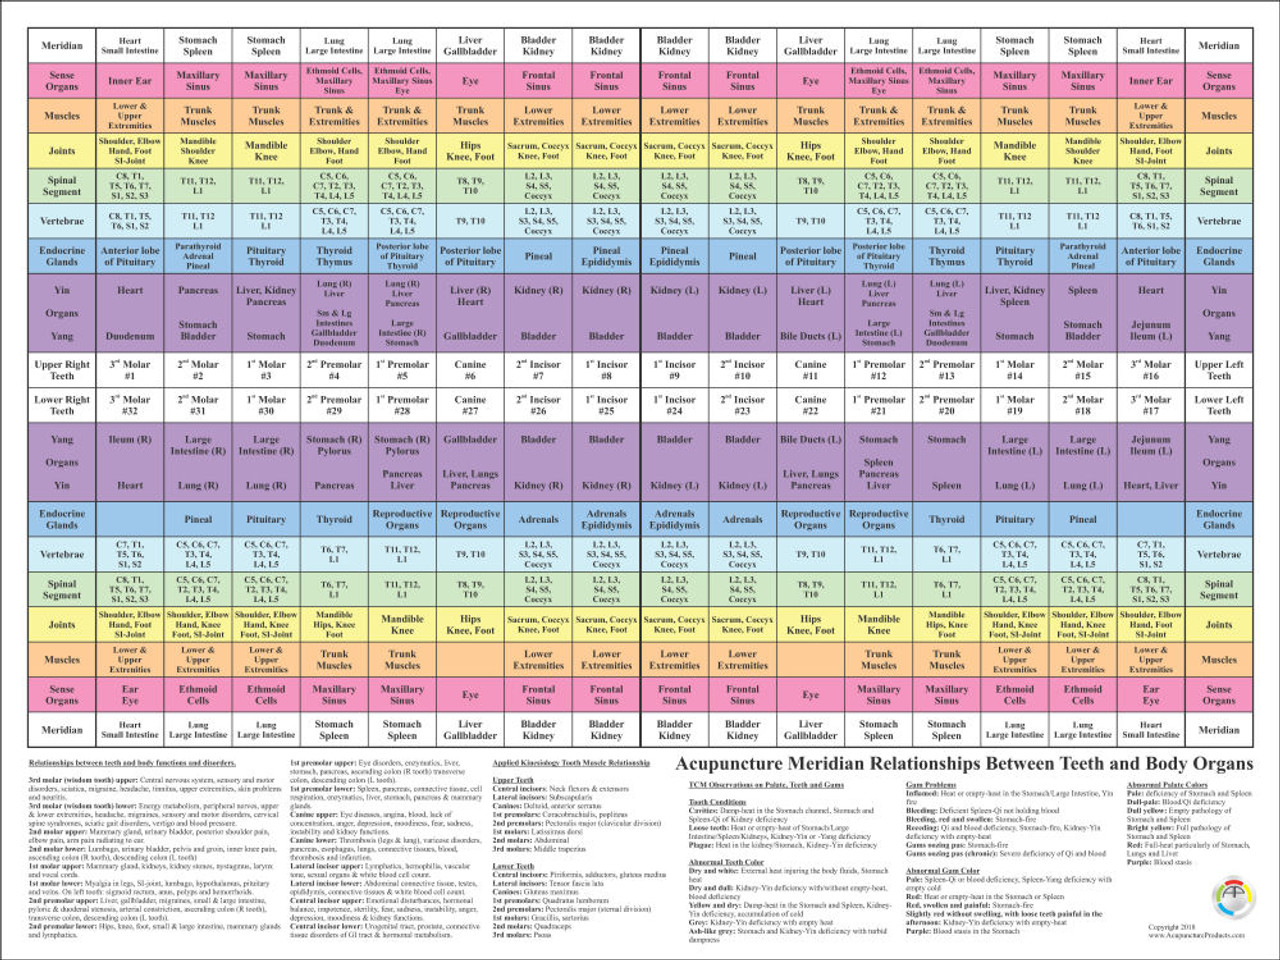 18 x 24 Dental Meridian Poster